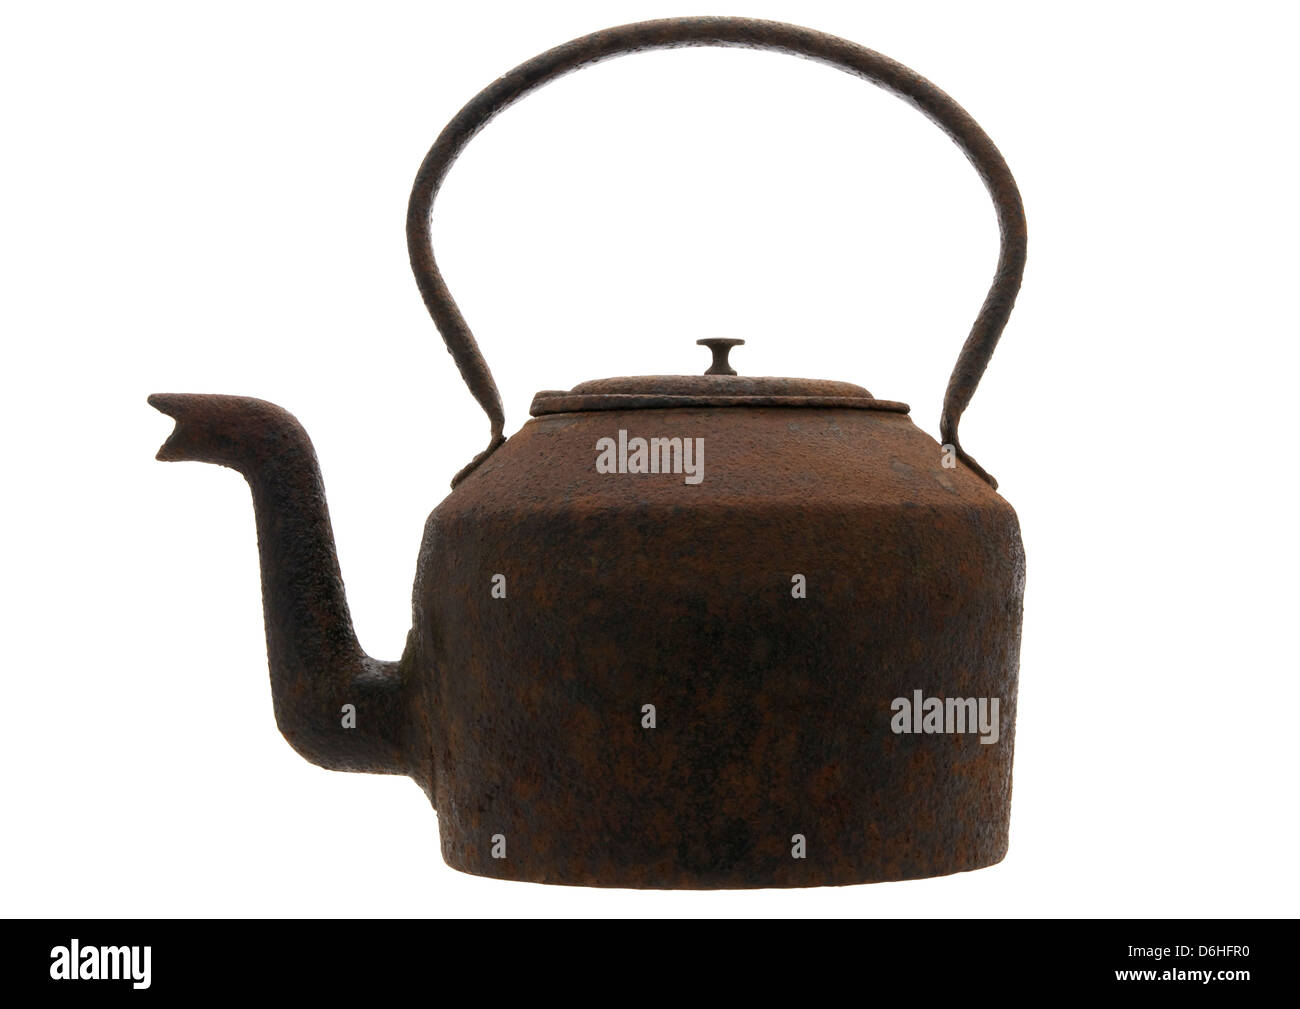 old rusty cast iron stove top kettle on white background